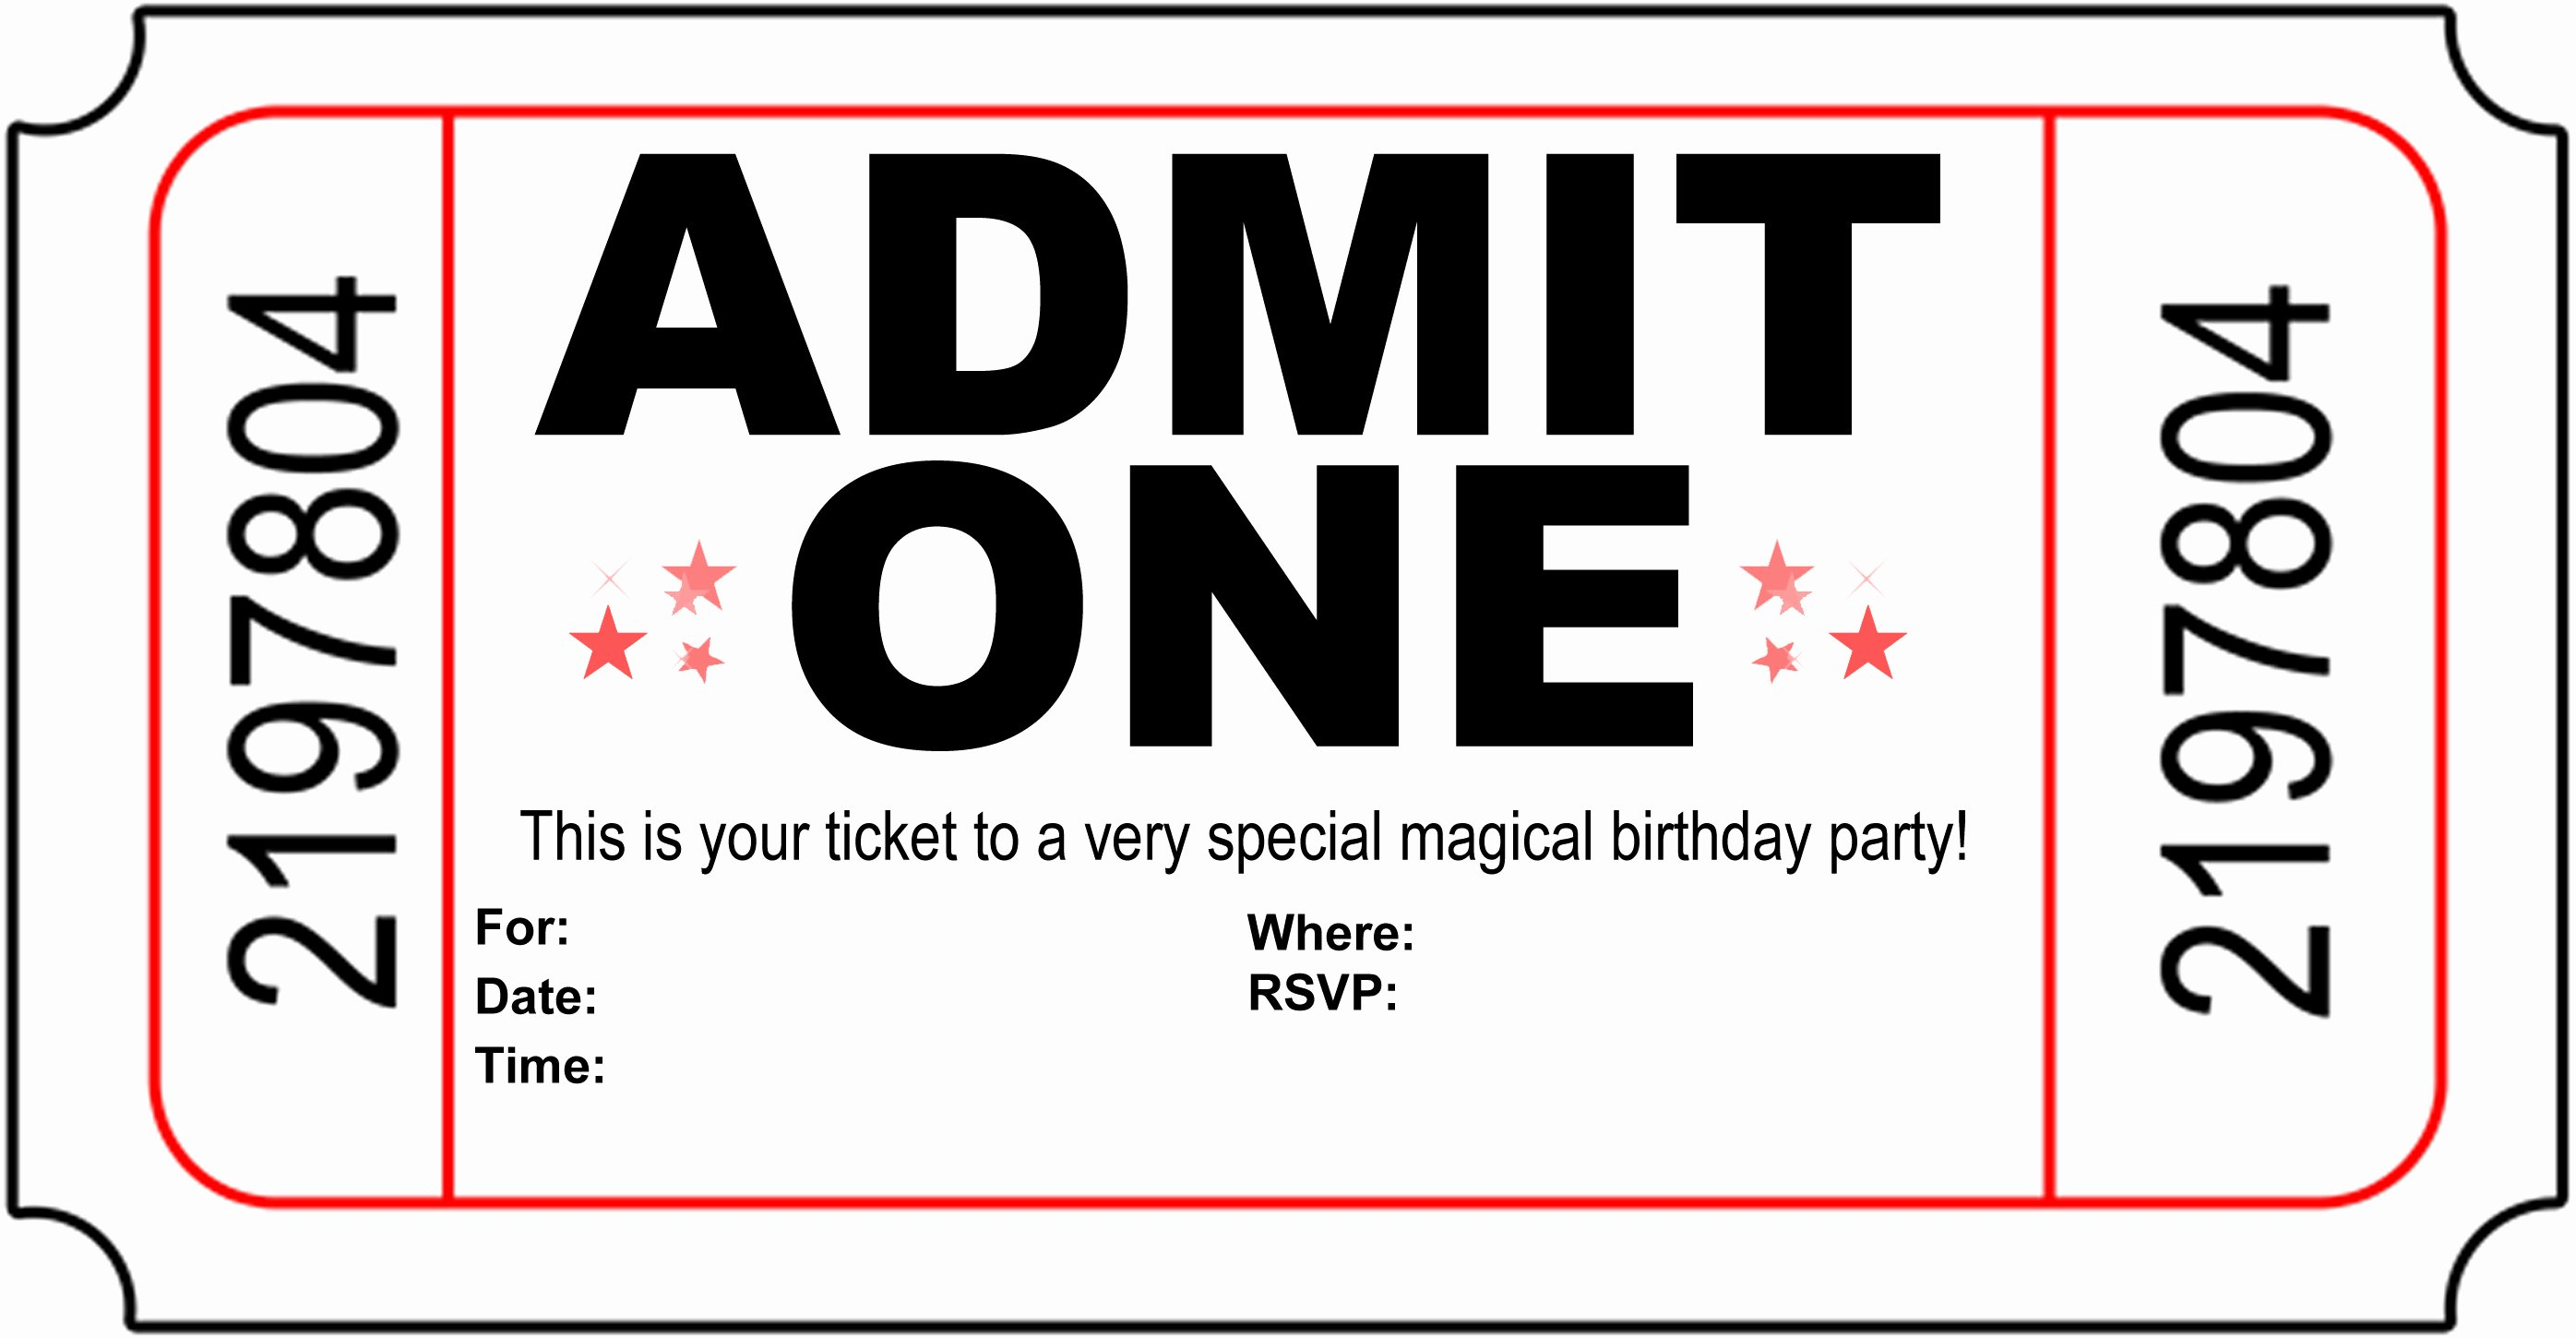 Circus Ticket Invitation Template Free Awesome Carnival Ticket Invitation Template Cliparts